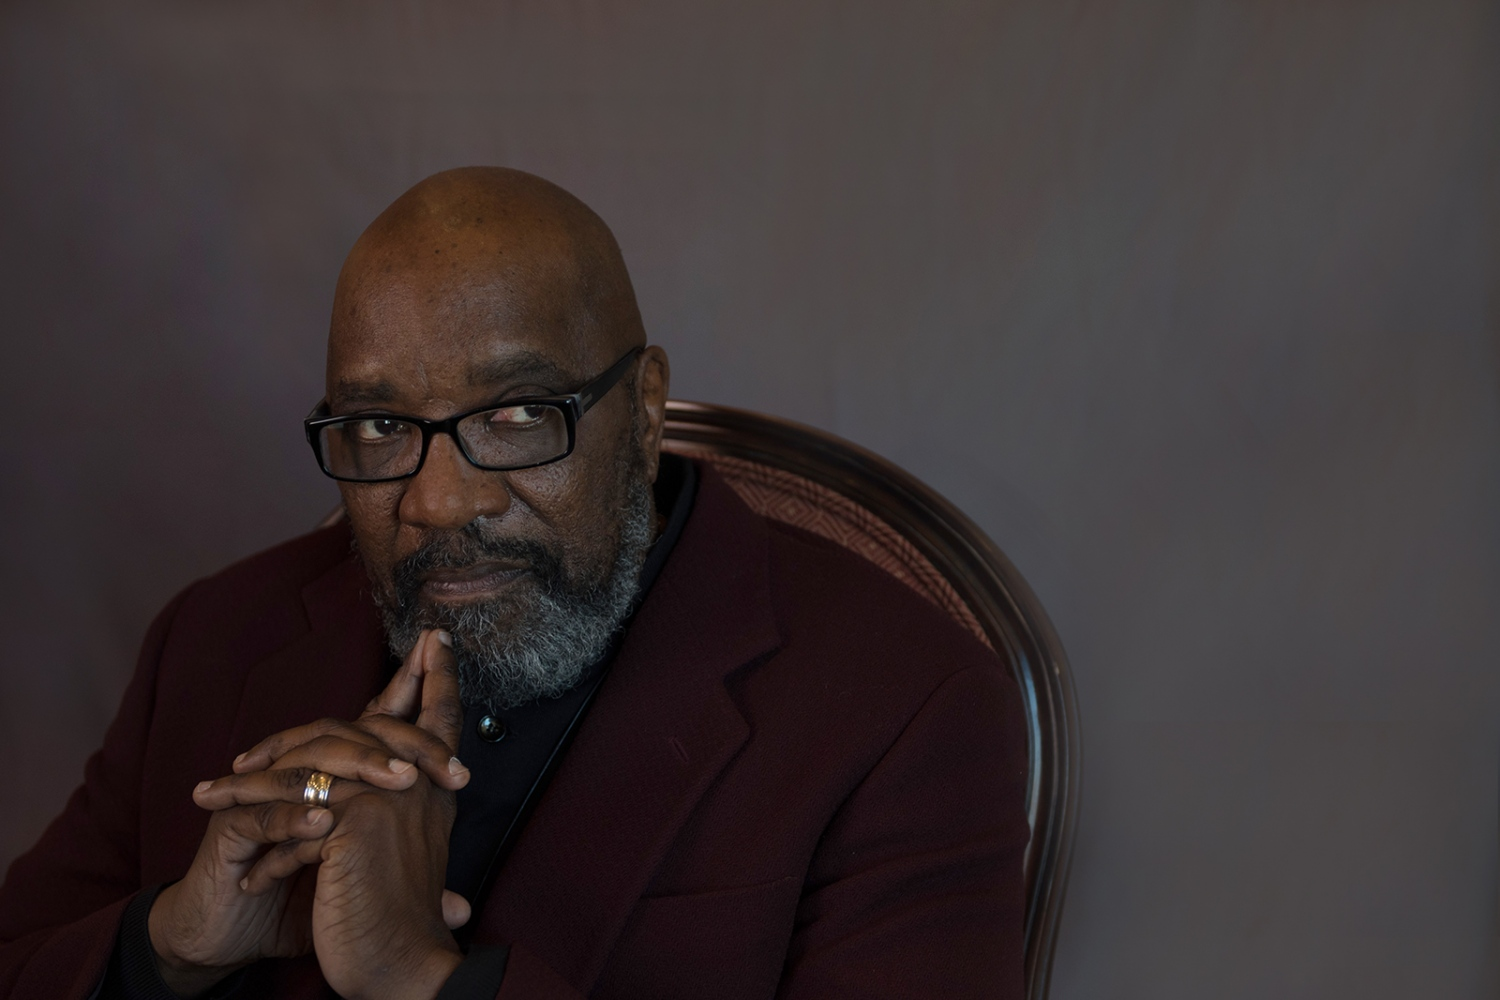 "Clyde Ruffin, 65, professor and chair emeritus (University  of Missouri,) senior pastor at Second Baptist Church, First Ward representative (Columbia City Council,) president of the John William Boone Heritage Foundation, Columbia, MO (originally from Kansas City, MO.) Marginalization I came of age in the late sixties, which was an extraordinary time of transformation for Black people. As a high school student I embodied the ivy league image of those who marched, boycotted and sat at lunch counters in their quest for Civil Rights equality. Always dressed in slacks, starched shirts, matching sweaters and shoes that were shined to perfection I endeavored to prove to a world that refused to see me that I was worthy, honest, intelligent and capable. In 1968 Martin Luther King was assassinated and the illusive dream of being judged by the ""content of my character"" rather than the ""color of my skin"" died with him. I discarded my buttoned down image for a dashiki, black leather jacket and boots. I stopped singing ""We Shall Overcome"" and started screaming ""Say it loud, 'I'm Black and I'm Proud!'"" No longer an exceptional Negro knocking on the door of injustice hoping that someone would hear me, I became an angry young Black man, fully prepared to kick the door in and take my rights ""by any means necessary."" As a college student, I became a proponent of the Black Arts Movement, which began to shape my identity as a socially conscious performing artist dedicated to the education and empowerment of Black people. I was always conscious of my Blackness, striving everyday to be ""blacker"" than I was the day before. I did not realize that my hyper race consciousness was not only fueled by anger at a world that I believed would always reject me but it also forced me to constantly justify my existence, validate my identity and forge my way through the dark maze of marginalization. Not unlike many Black people, I was able to work, establish a family and achieve a level of success in spite of carrying this burden of Blackness, never anticipating that after twenty years I would reach the tipping point. In 1988 I was blessed to visit five African countries. As I disembarked in Ghana, I was shocked to see that the path to the terminal was lined with armed soldiers. As I passed through, one of them quietly said, ""Welcome home brother."" When I turned to respond he looked blankly into the distance and I knew that his words of acceptance were a forbidden act that my presence compelled him to break. In Egypt I recall walking down at street in Cairo, hearing someone screaming ""My brother!"" I turned to see a large man who walked with a cane, coming quickly towards me. I stopped as he reached out to me and said, ""My brother, you have finally come back to me. "" Then he looked deeply inside me and walked away. In Ethiopia I was stopped by someone who refused to believe that I was not native born because there was something uniquely Ethiopian about my eyes. I experienced similar gestures of welcome and recognition in Kenya and I knew that something within me was being transformed. Finally, I stood in the dungeon of a slave holding fort in Senegal, looking at the Atlantic Ocean through the narrow opening of the ""door of no return."" As I listened to stories of families destroyed, abused men and women who were beaten, shackled and branded before being loaded in the hull of slave ships. I could feel the presence of ancient generations whose indomitable spirits were not conquered by the horrors of history and it released a deeper sense of my own power. For the first time in my life, I began to feel the burden of Blackness lift and I knew that I was finally being set free from seeing myself through the lens of those who wanted to marginalize me. From that moment until know, I move through the world as someone who owns the time and space that I occupy. I live without apologies or explanations for who I am as a creative, politically engaged Black man of faith—a son, husband, father and teacher."